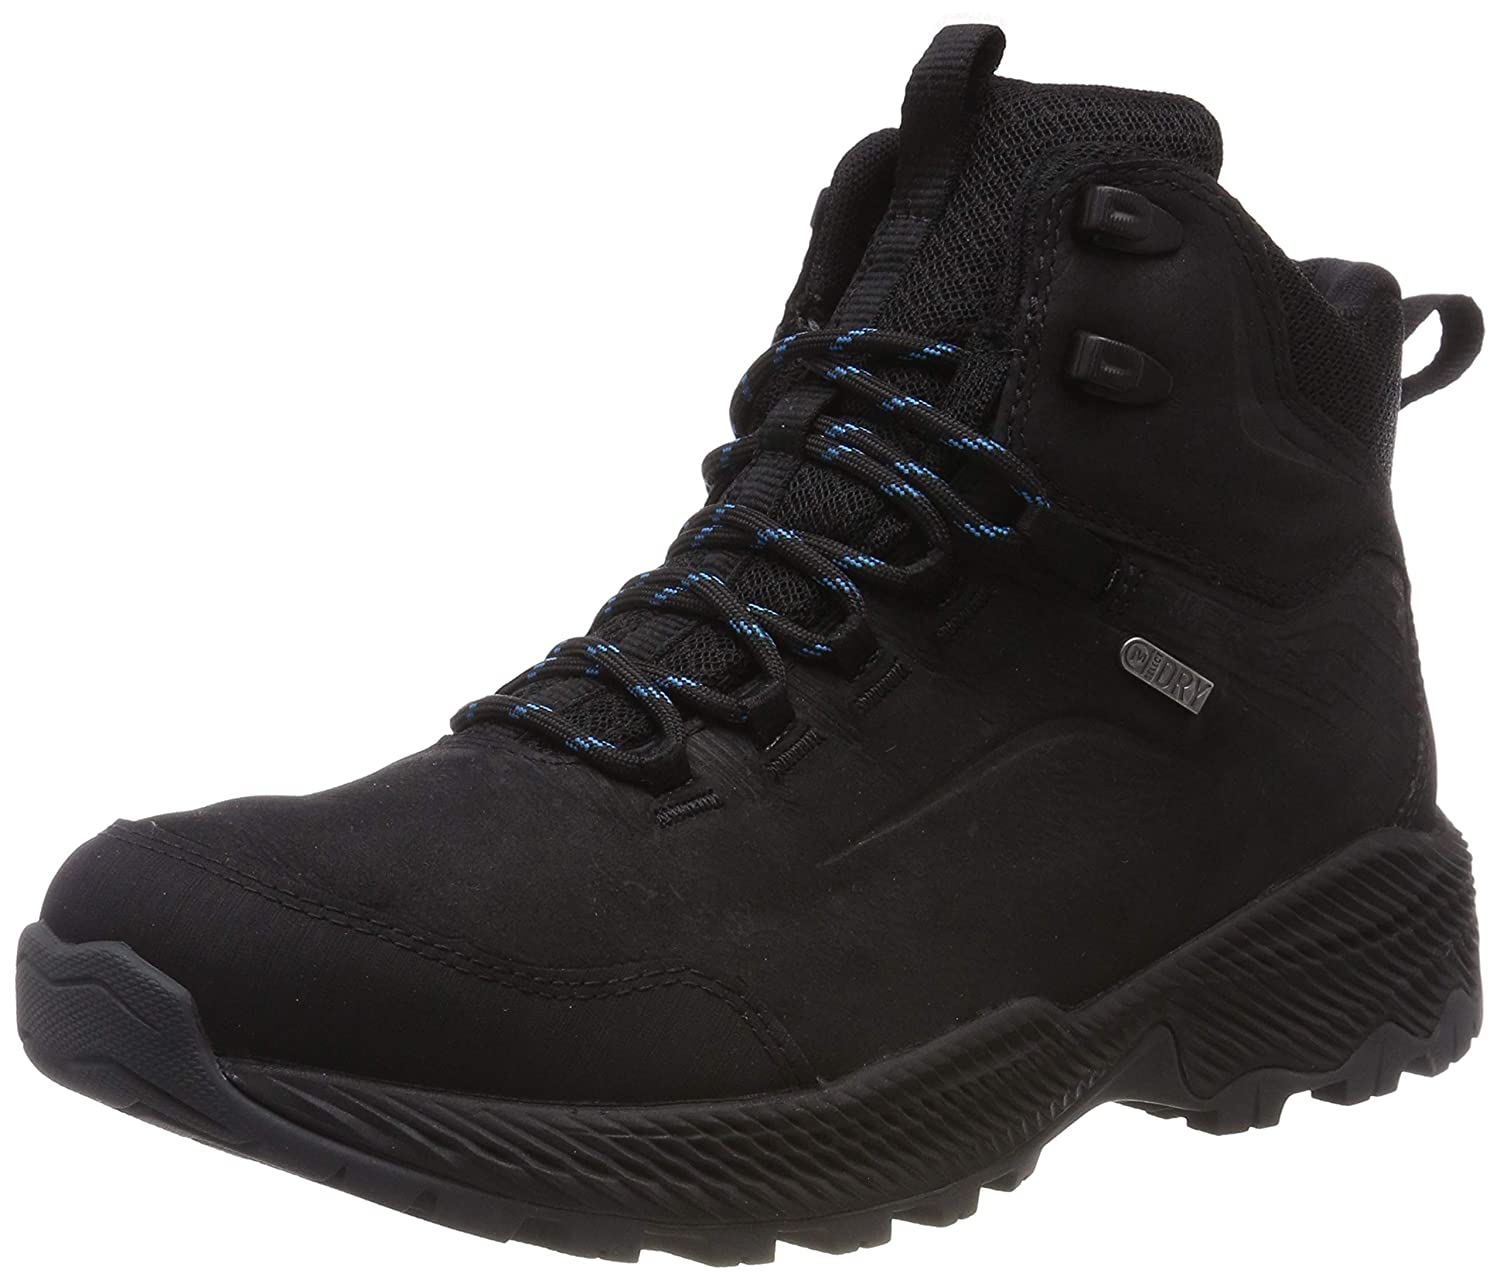 2eb9f69e Merrell Men's Forestbound Mid Waterproof High Rise Hiking Boots